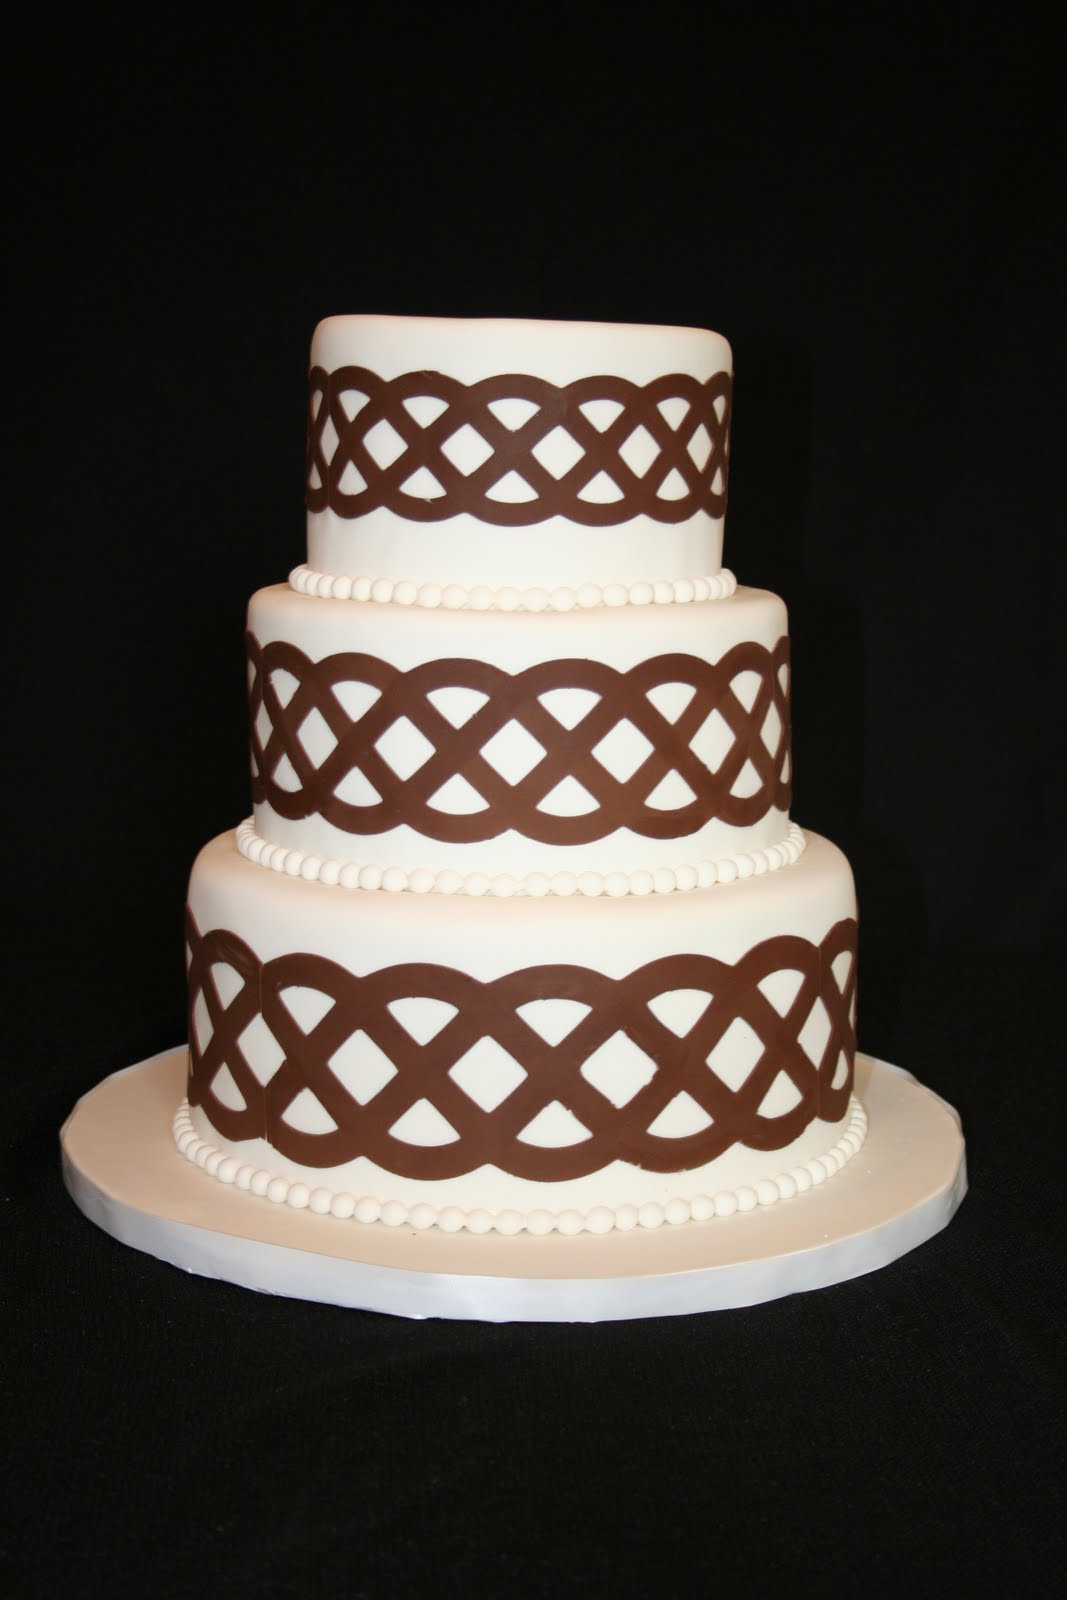 Cake Designs And Images : Sweet Grace, Cake Designs